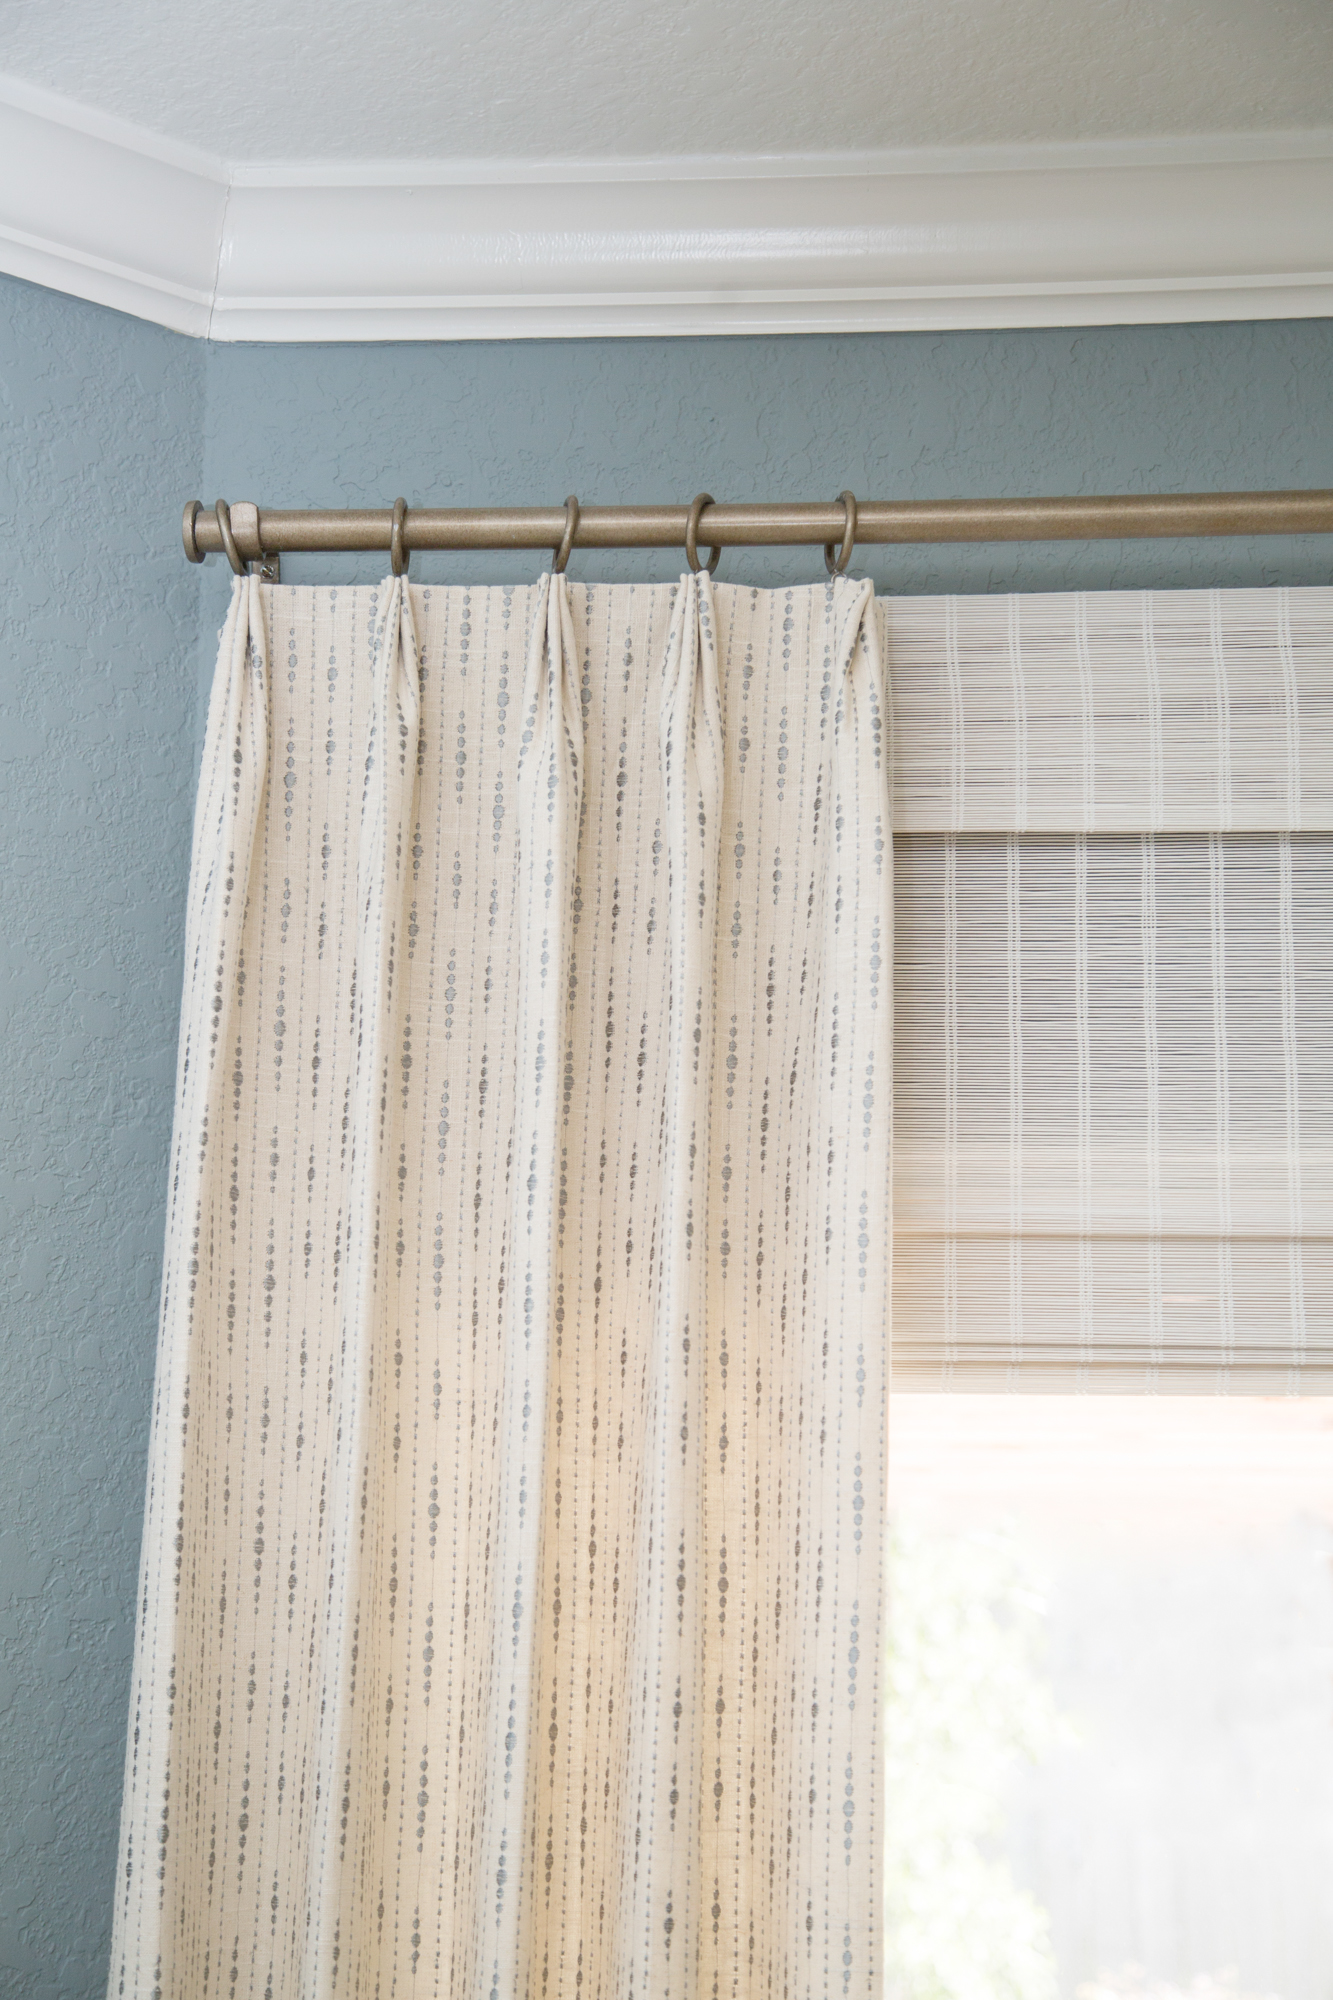 This drapery panel with woven wood shade is mounted higher than the window #windowtreatment #draperypanel